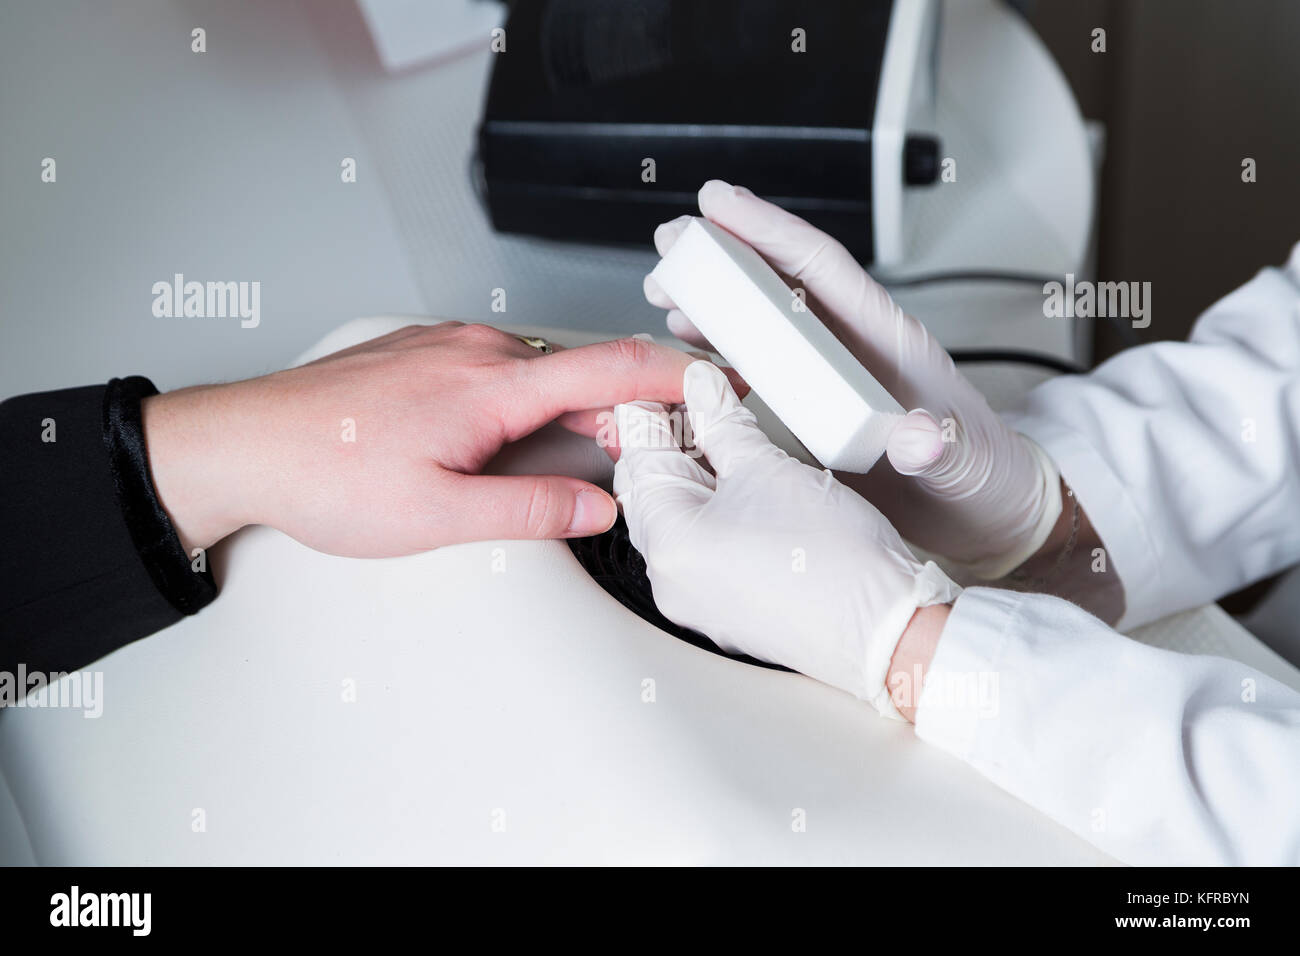 Cosmetologist beautician treats nails of patient with nailfile. - Stock Image